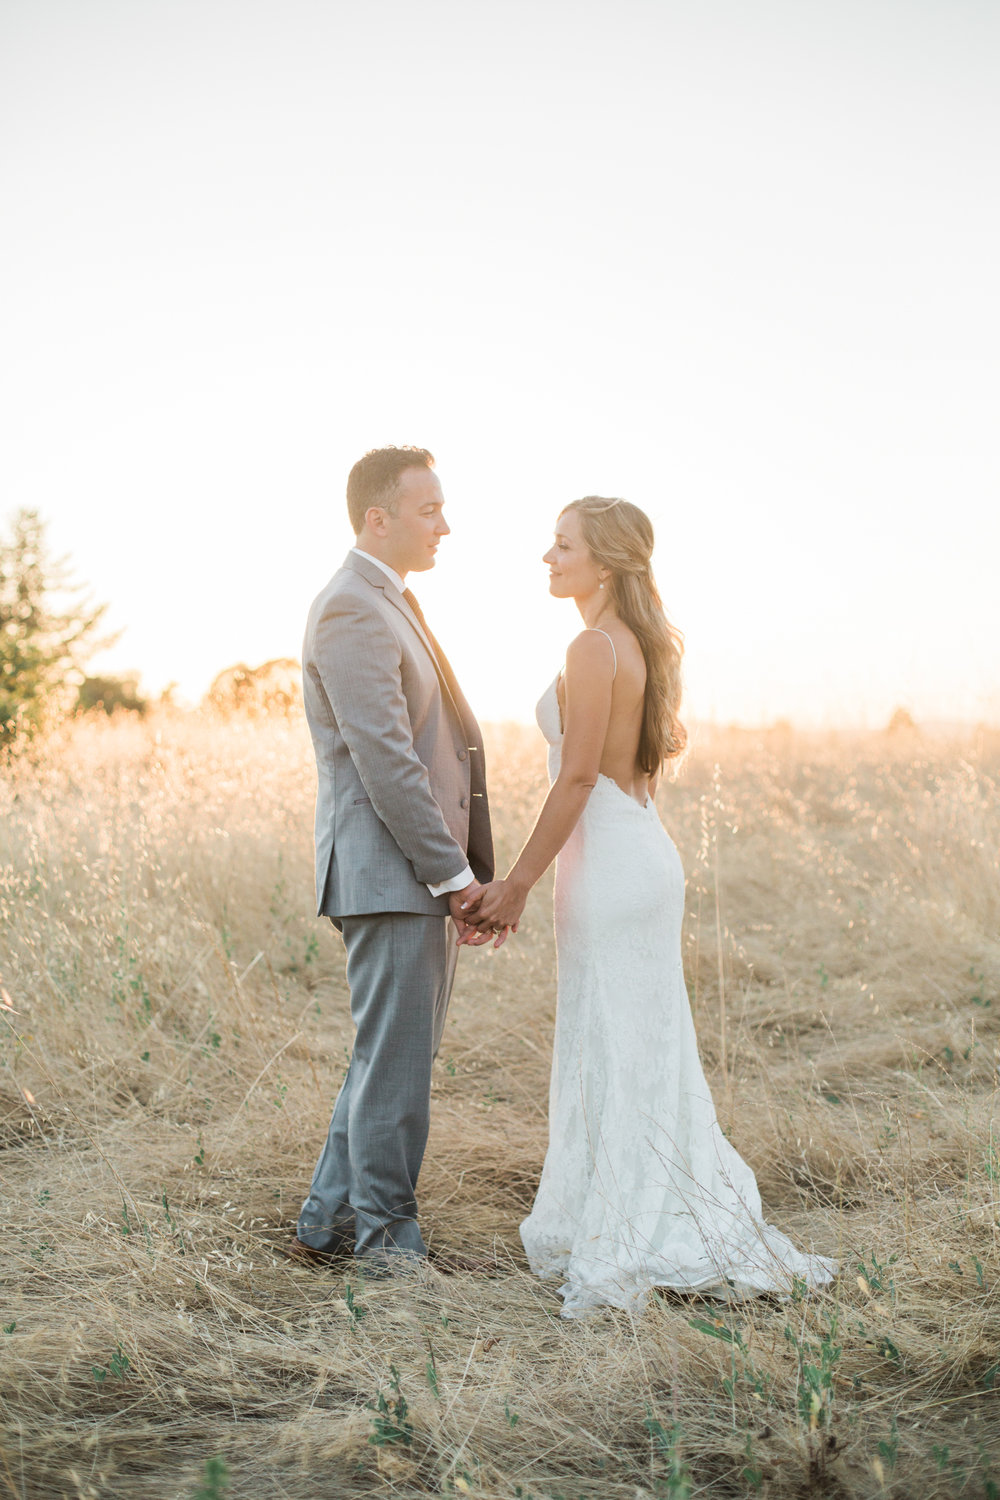 DALLAS + HALEY - SONOMA, CA